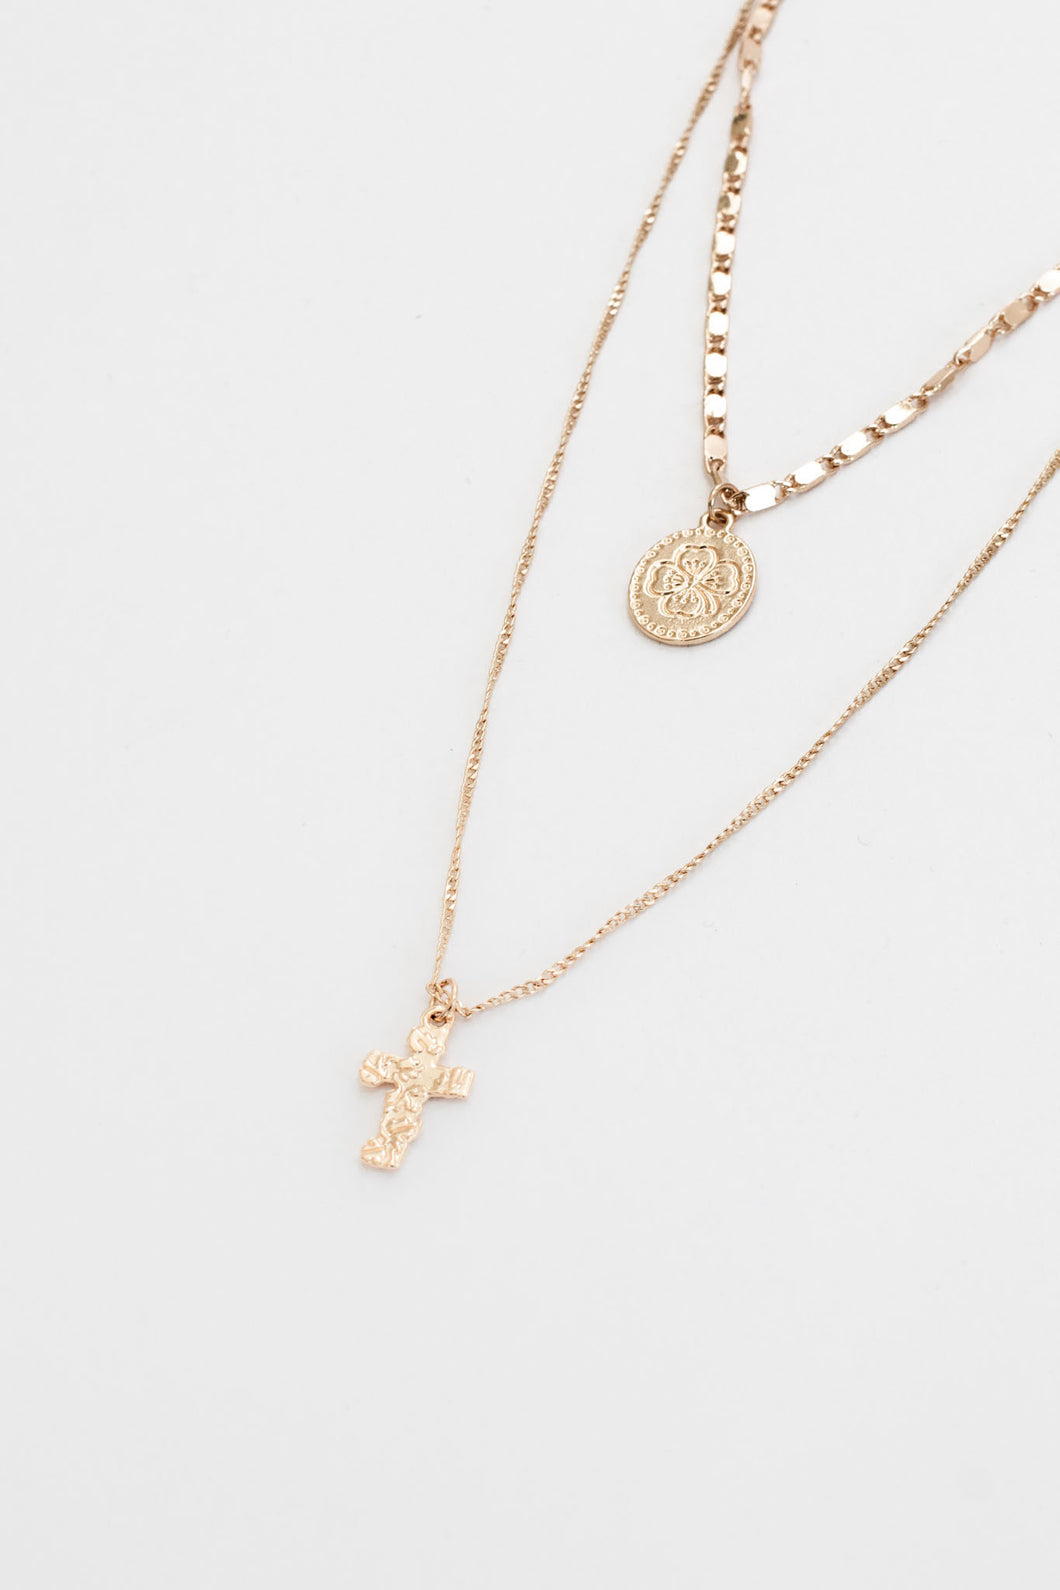 Pernille Coin Choker + Cross Pendant Layered Necklace - Gold